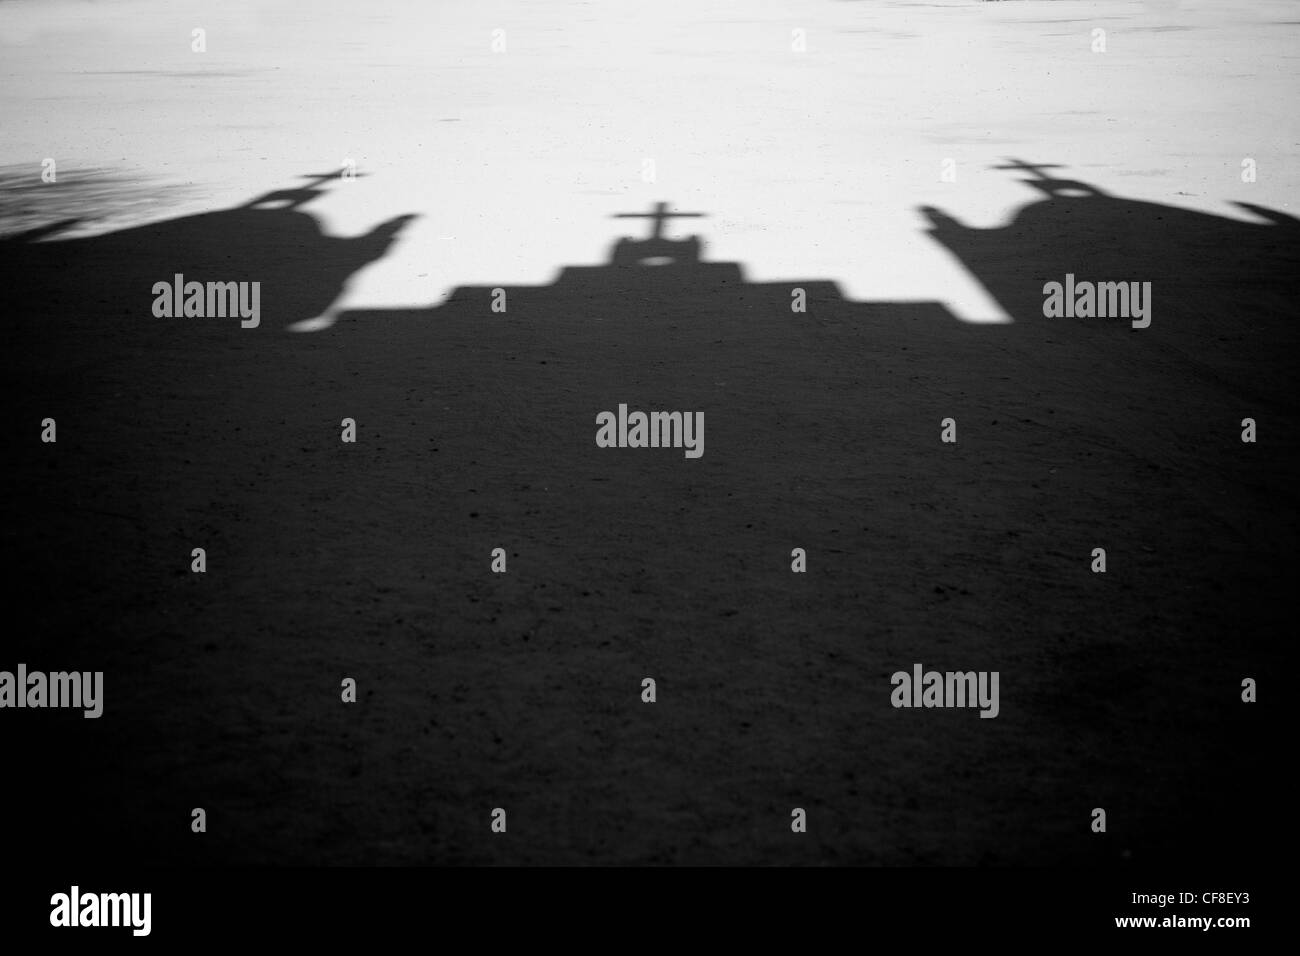 Shadow of Church with Crosses - Stock Image